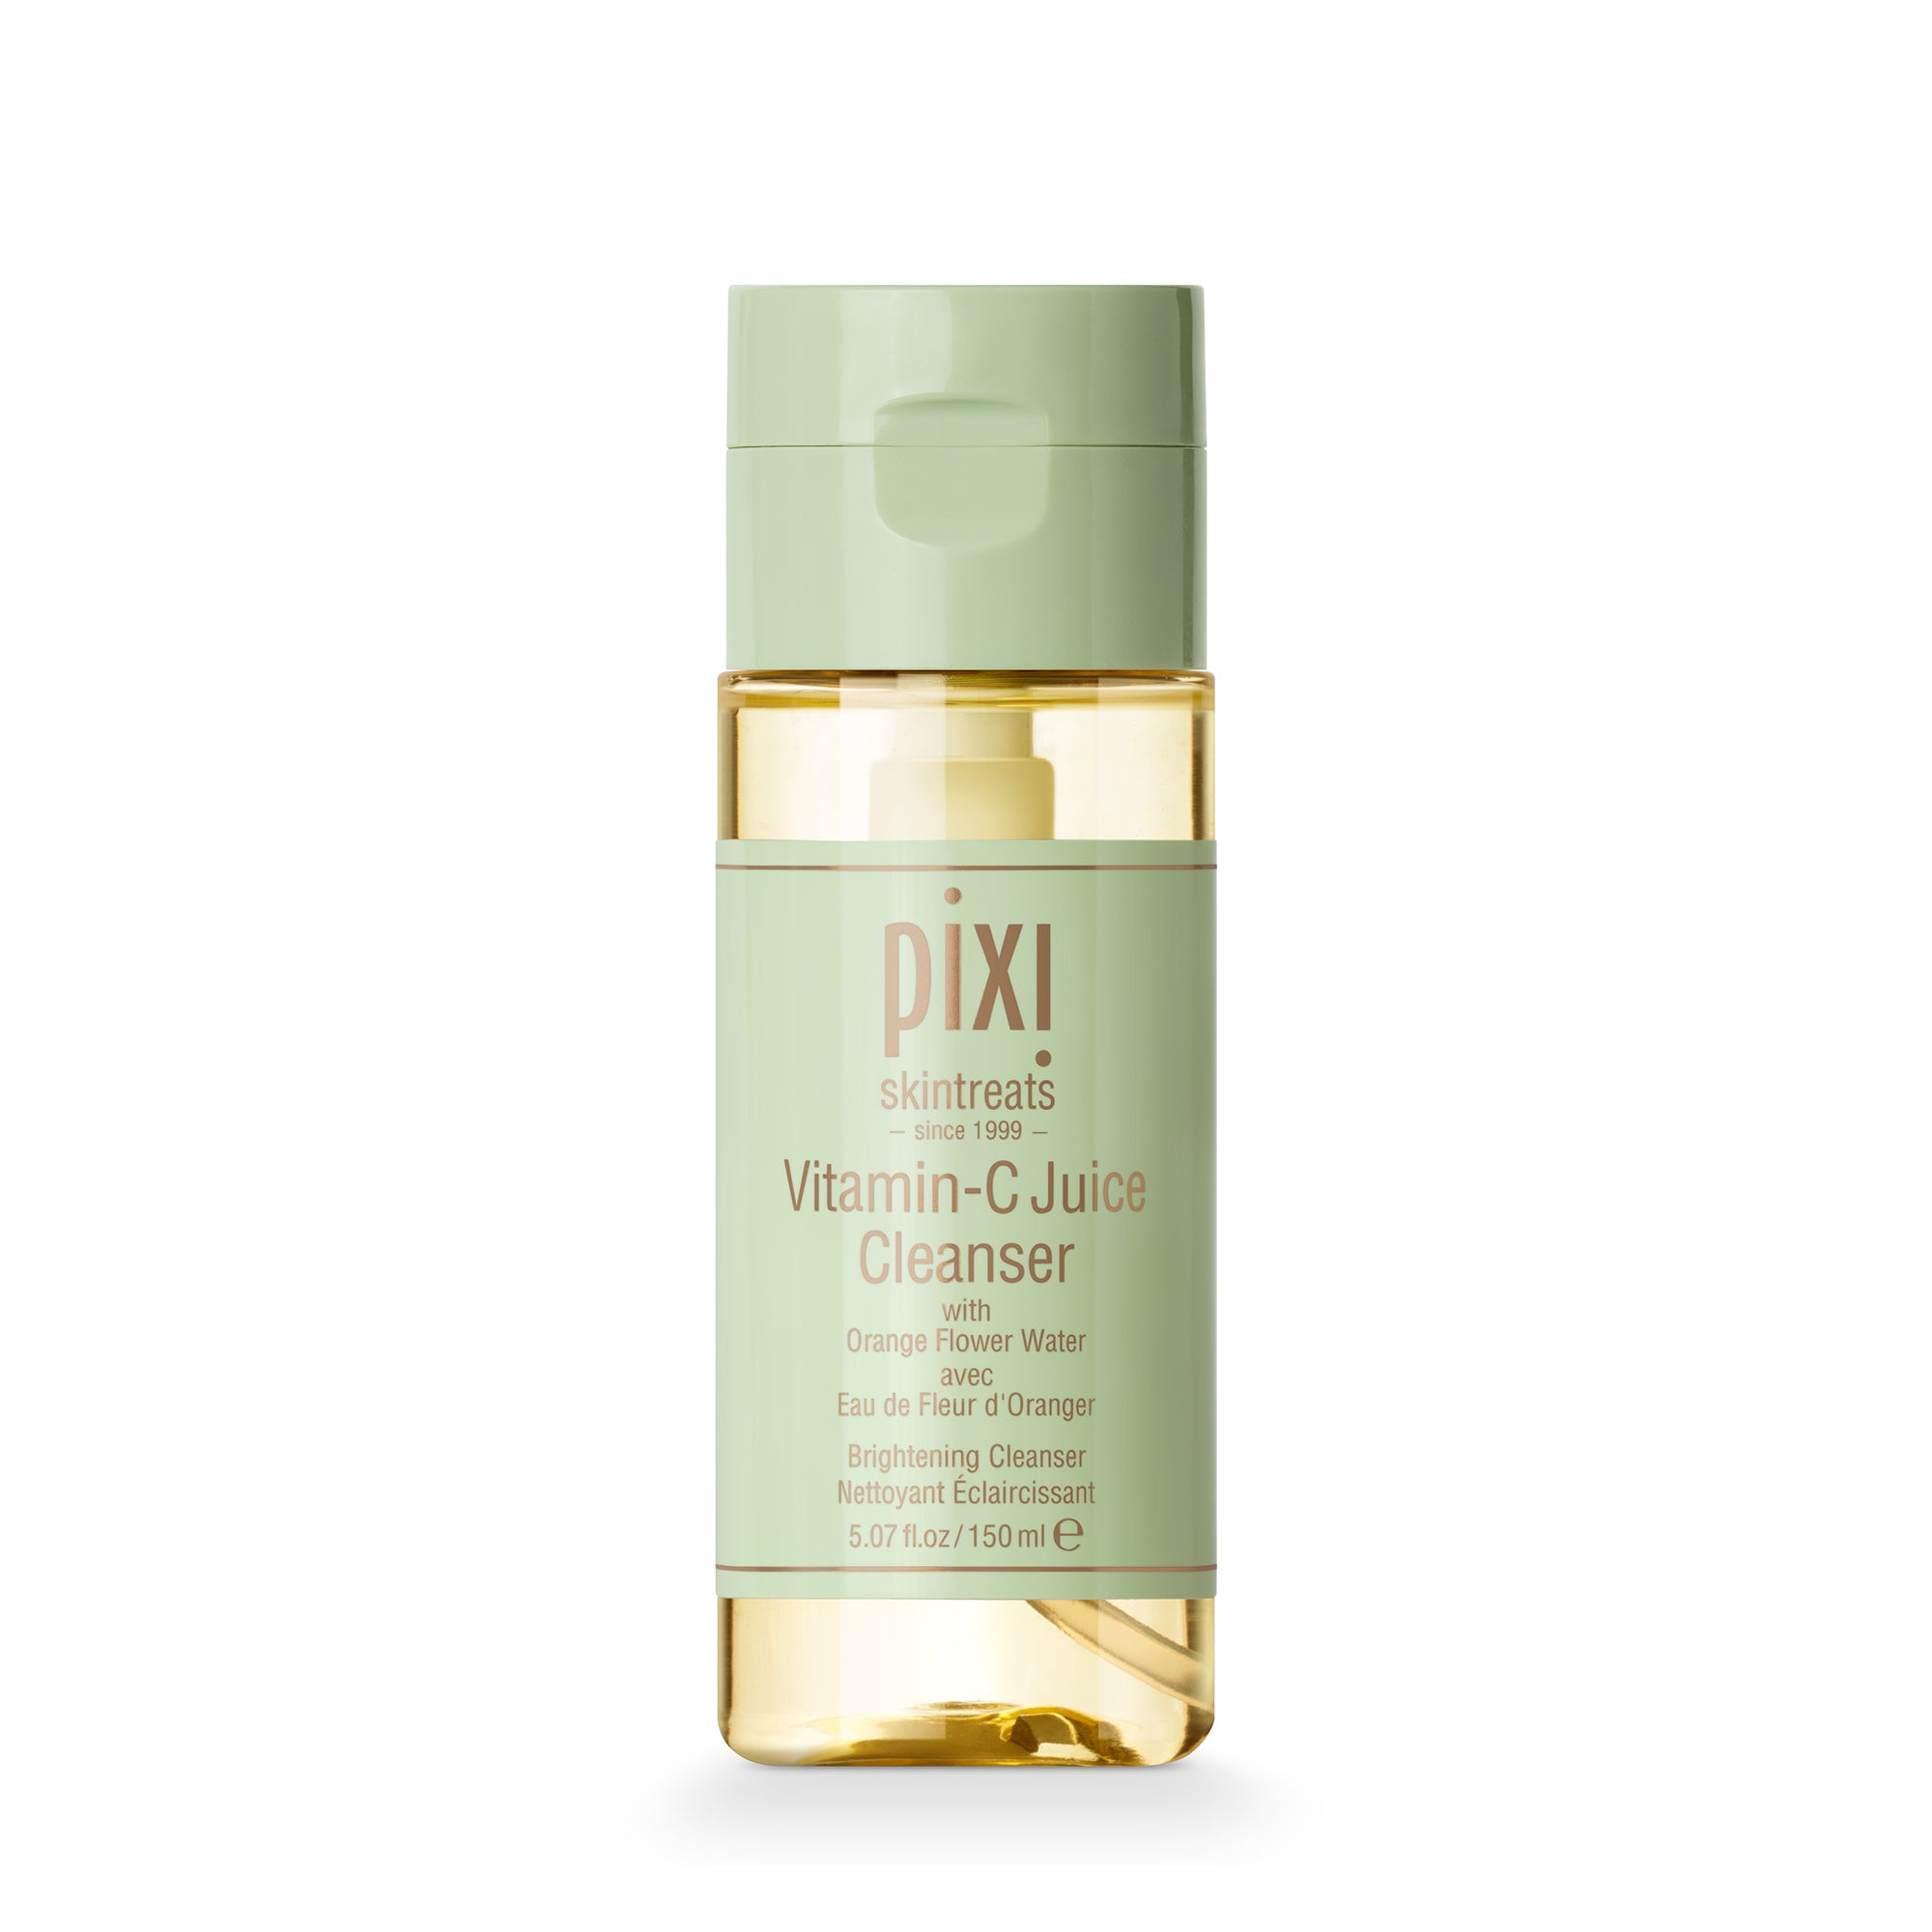 Pixi Vitamin-C Juice Cleanser